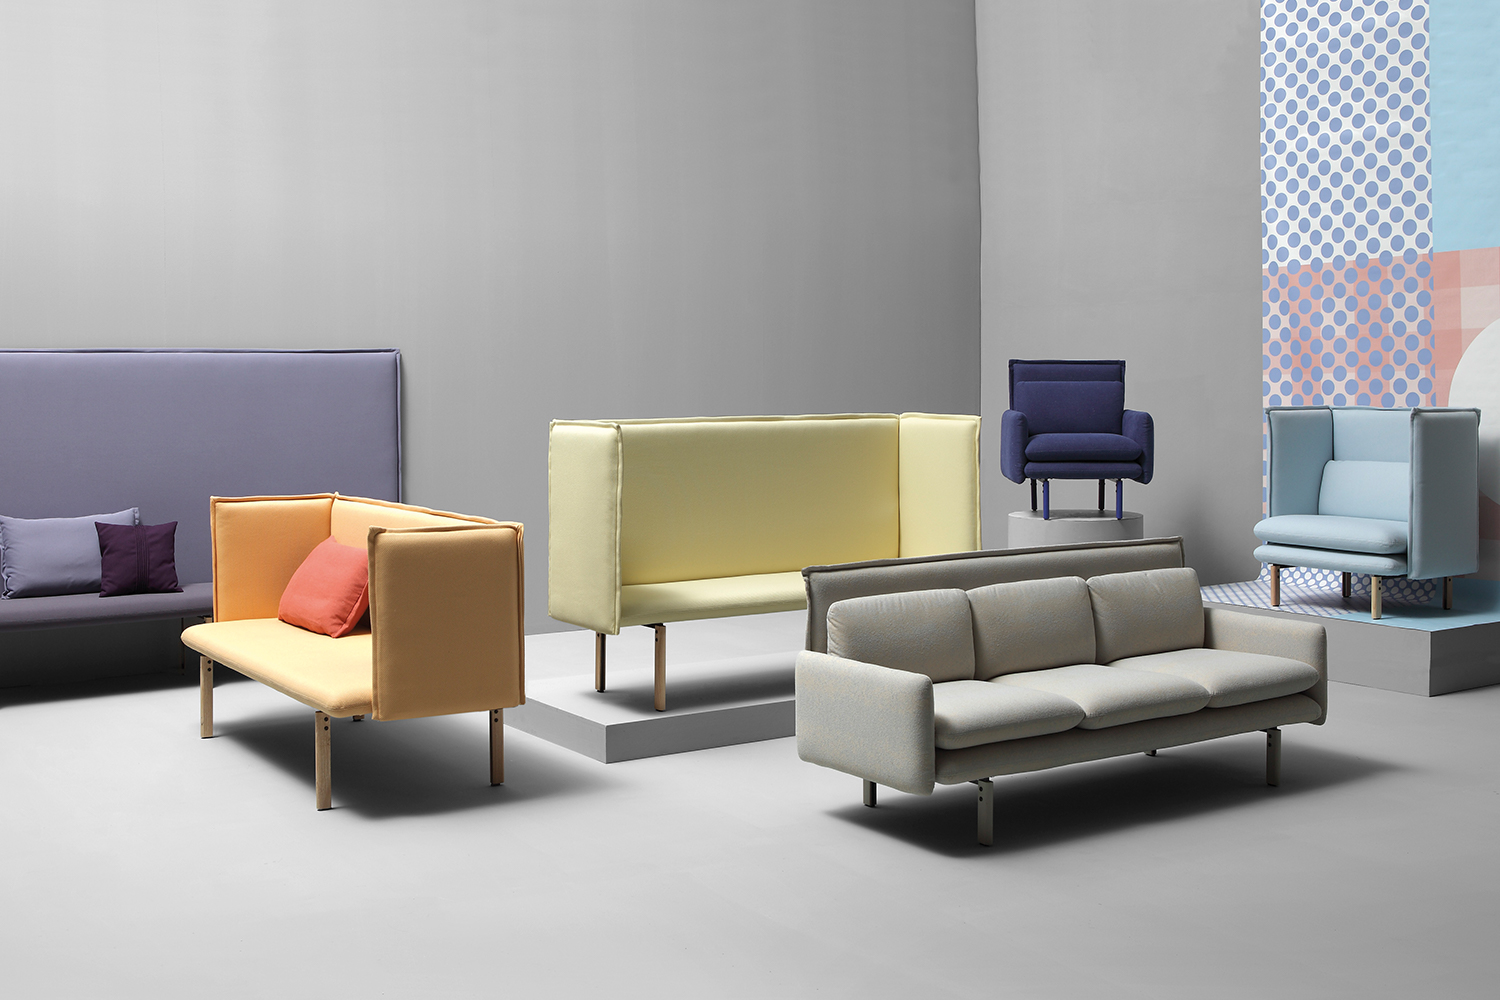 Sancal's fresh and functional furniture continues to set trends.